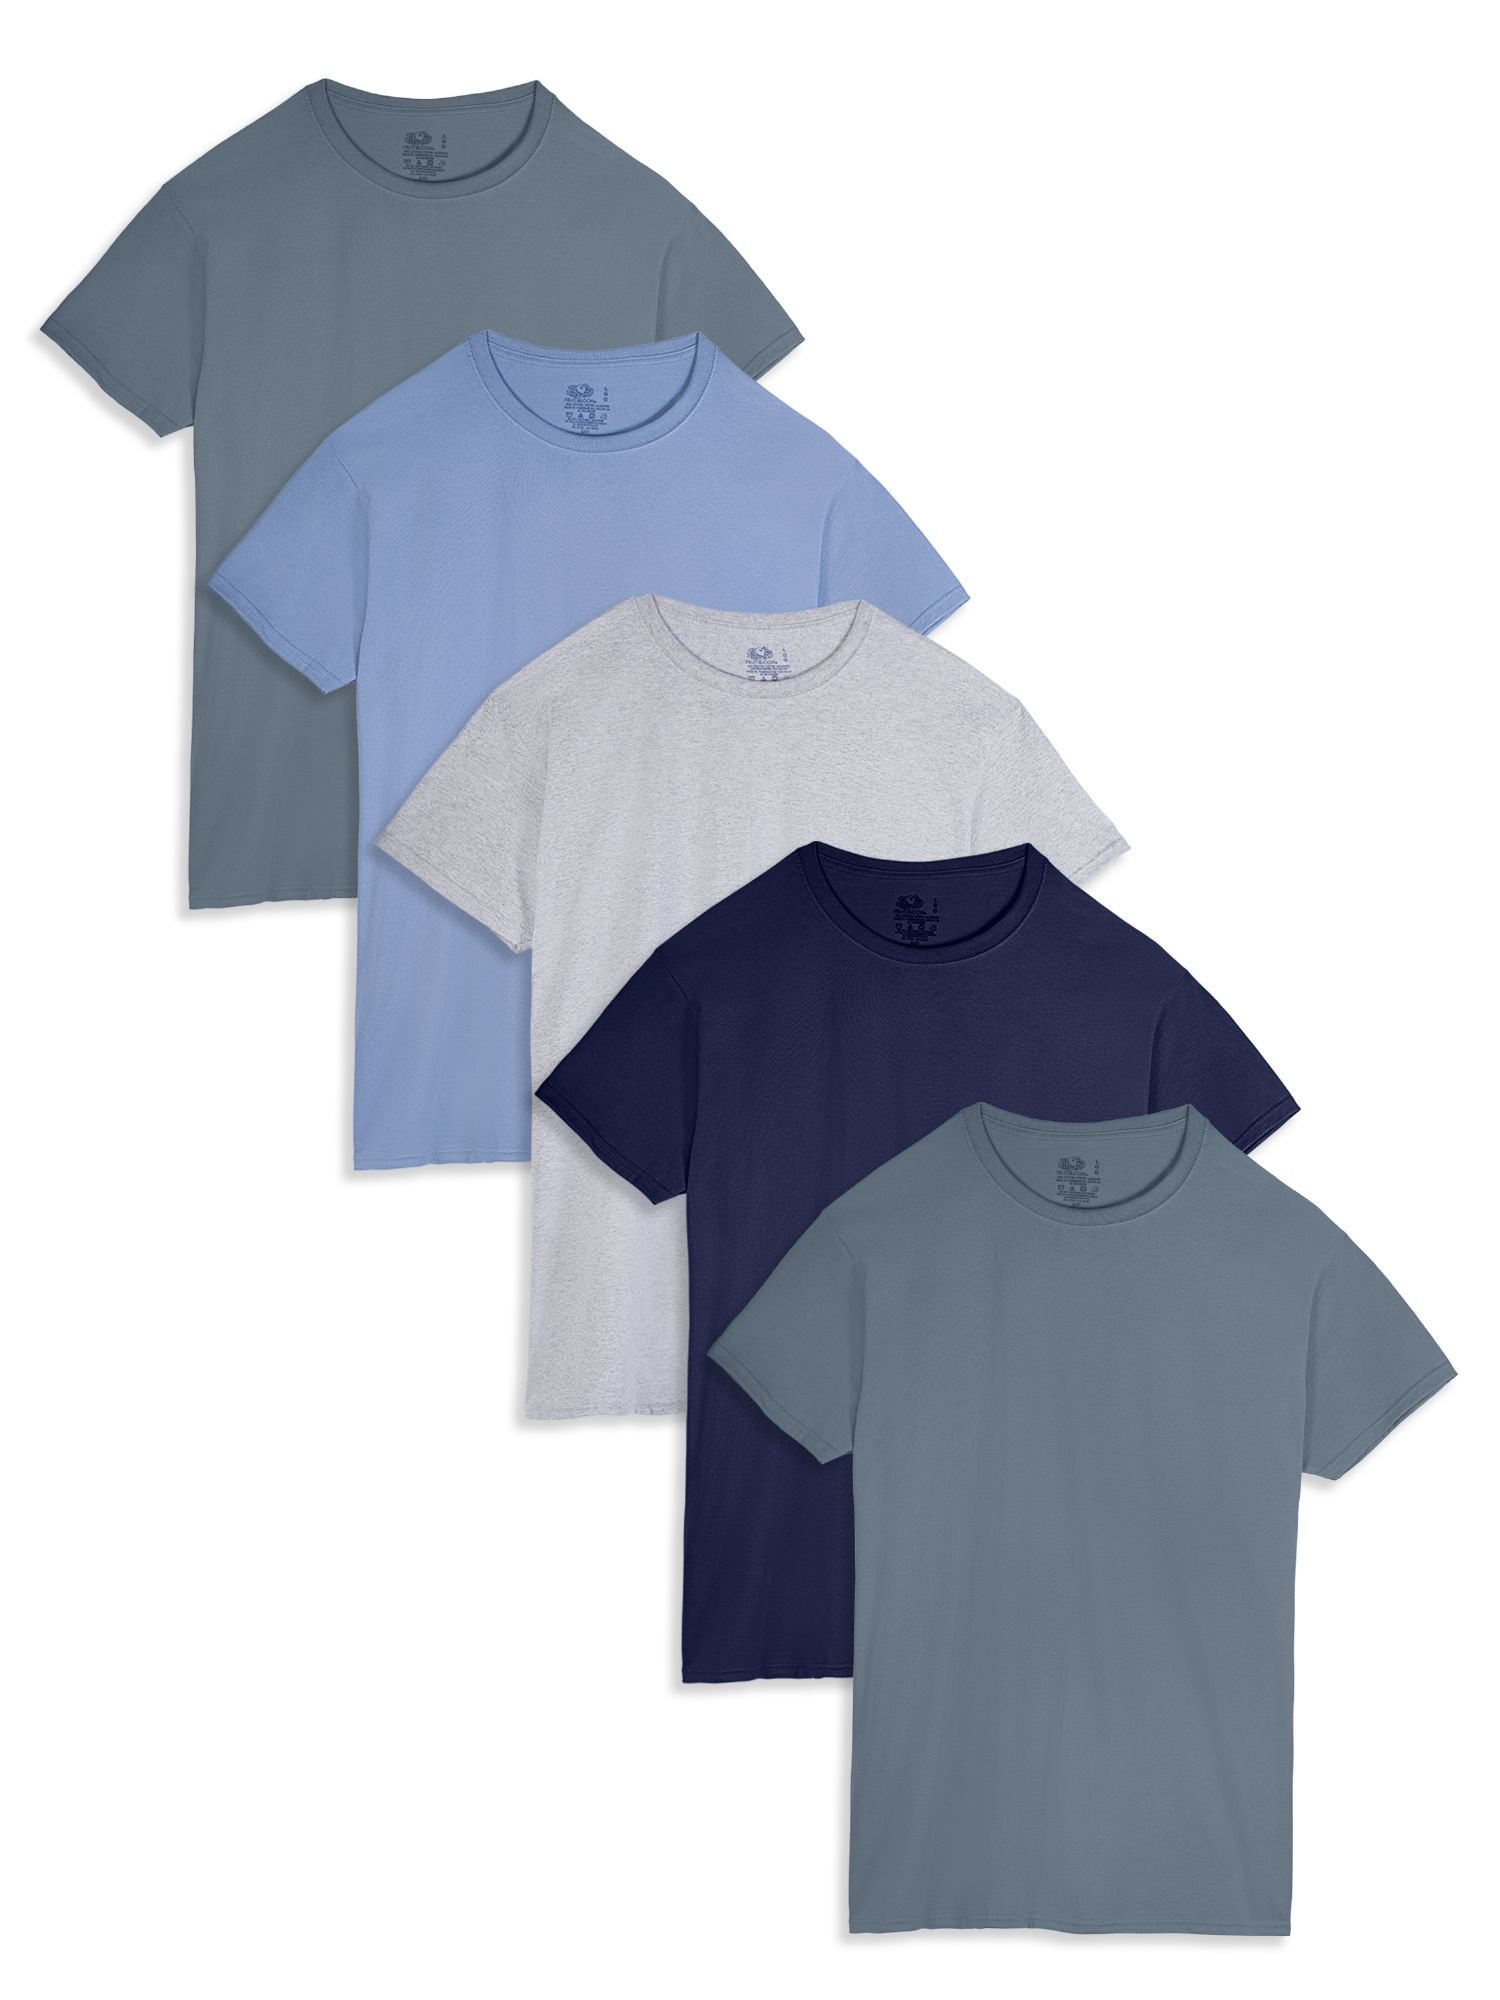 Men's Dual Defense Assorted Color Crew T-Shirts, 5 Pack